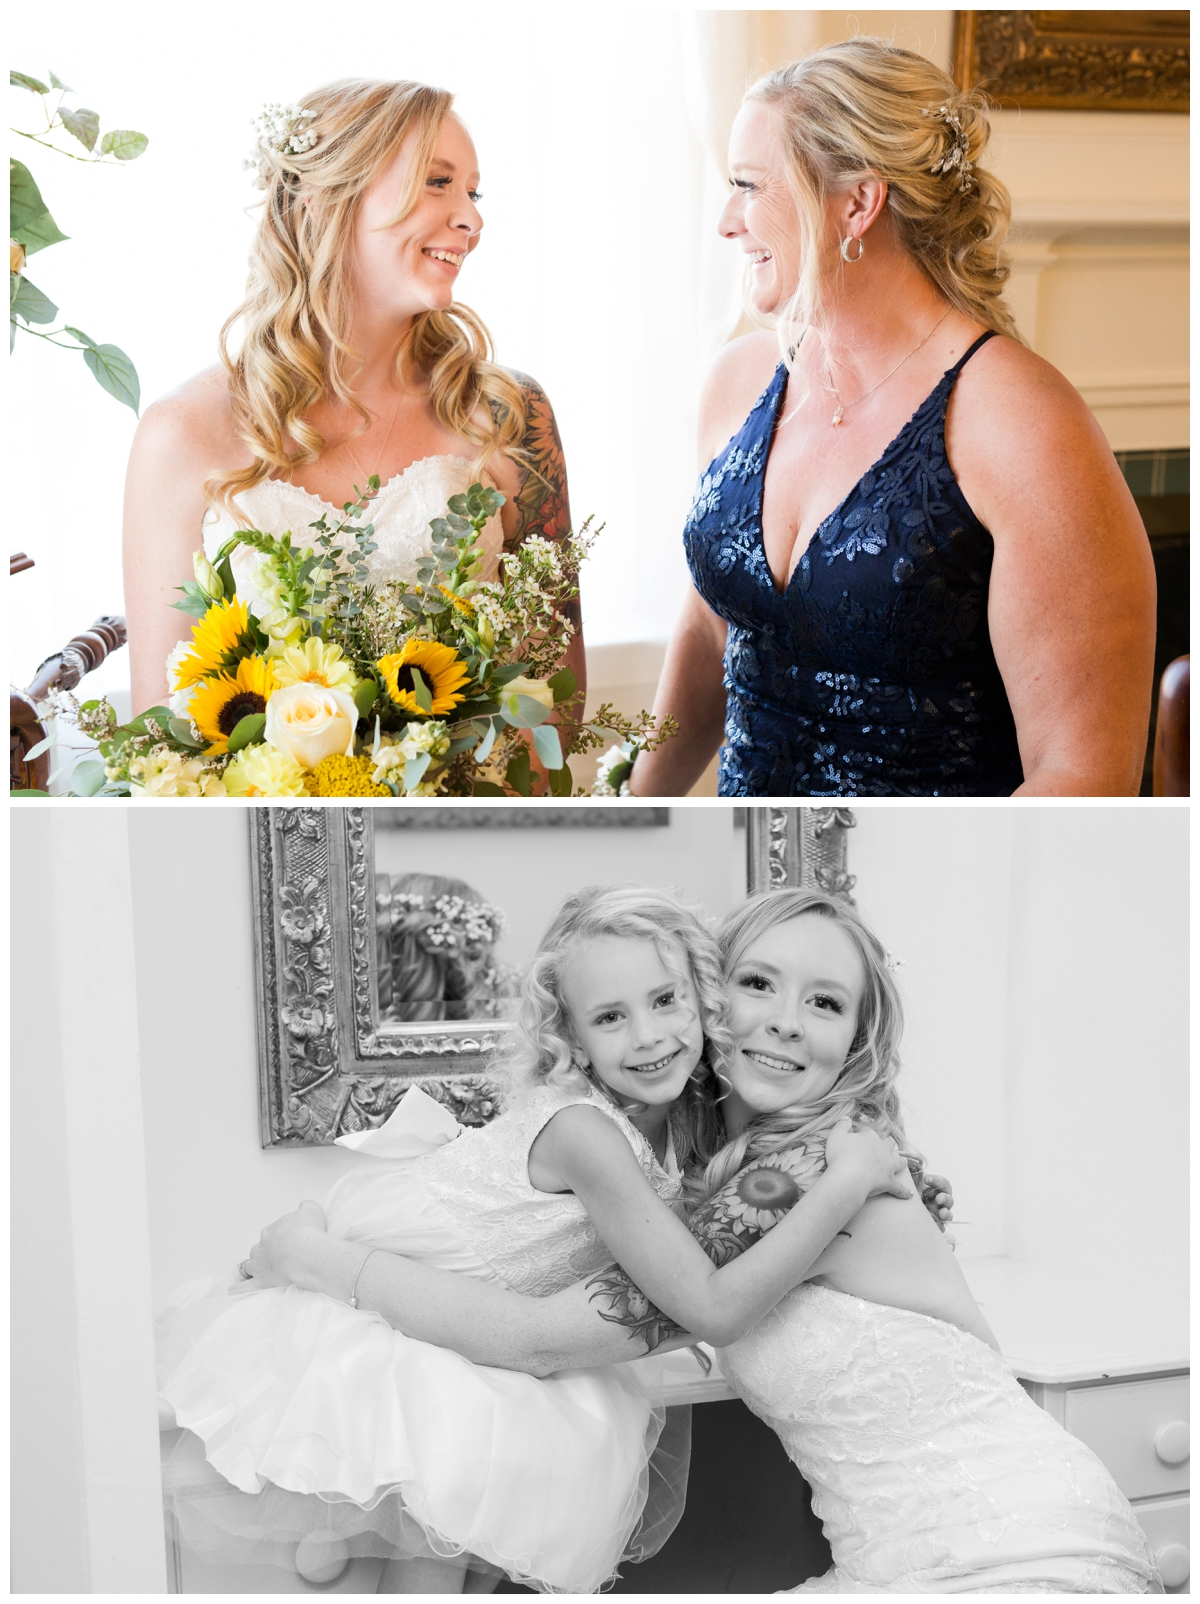 Three generations of women on the wedding day